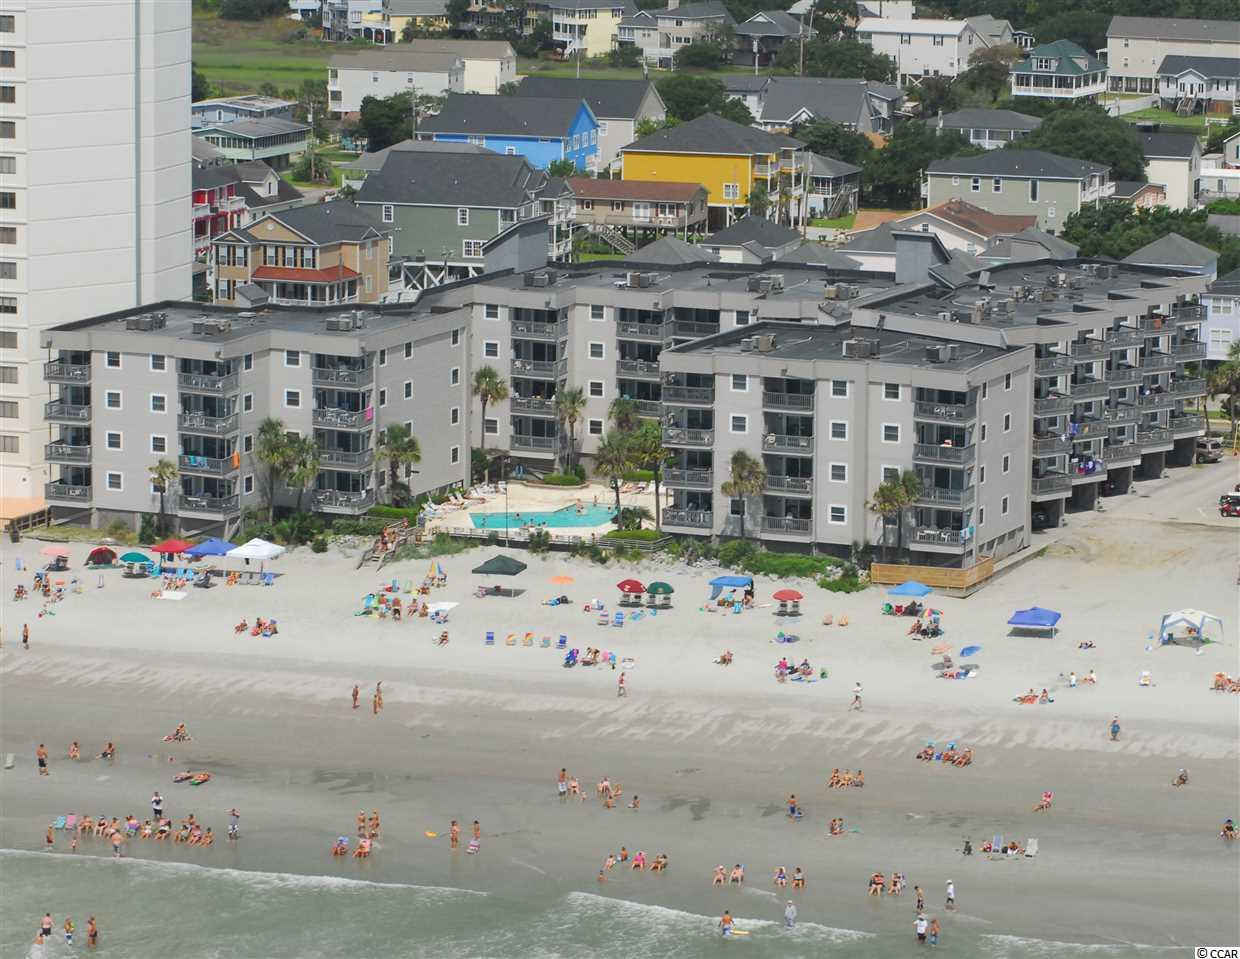 212 Sea Master is a direct oceanfront three bedroom and three full bathroom condo with approximately 1152 heated square feet. Each bedroom has ensuite bathrooms. The master suite is oceanfront with direct access to the balcony. The well-appointed kitchen has new appliances, and the condo is turnkey furnished. The large oceanfront living room and dining areas lead to a private balcony featuring uninterrupted views of the beach and ocean. Sea Master is a well maintained and managed complex offering owners private ground level storage, a large oceanfront pool, and sundeck. There is plentiful parking utilizing their unique annex parking lot. All this in a building with concrete fiber siding and newer impact-resistant vinyl windows and sliding glass doors.